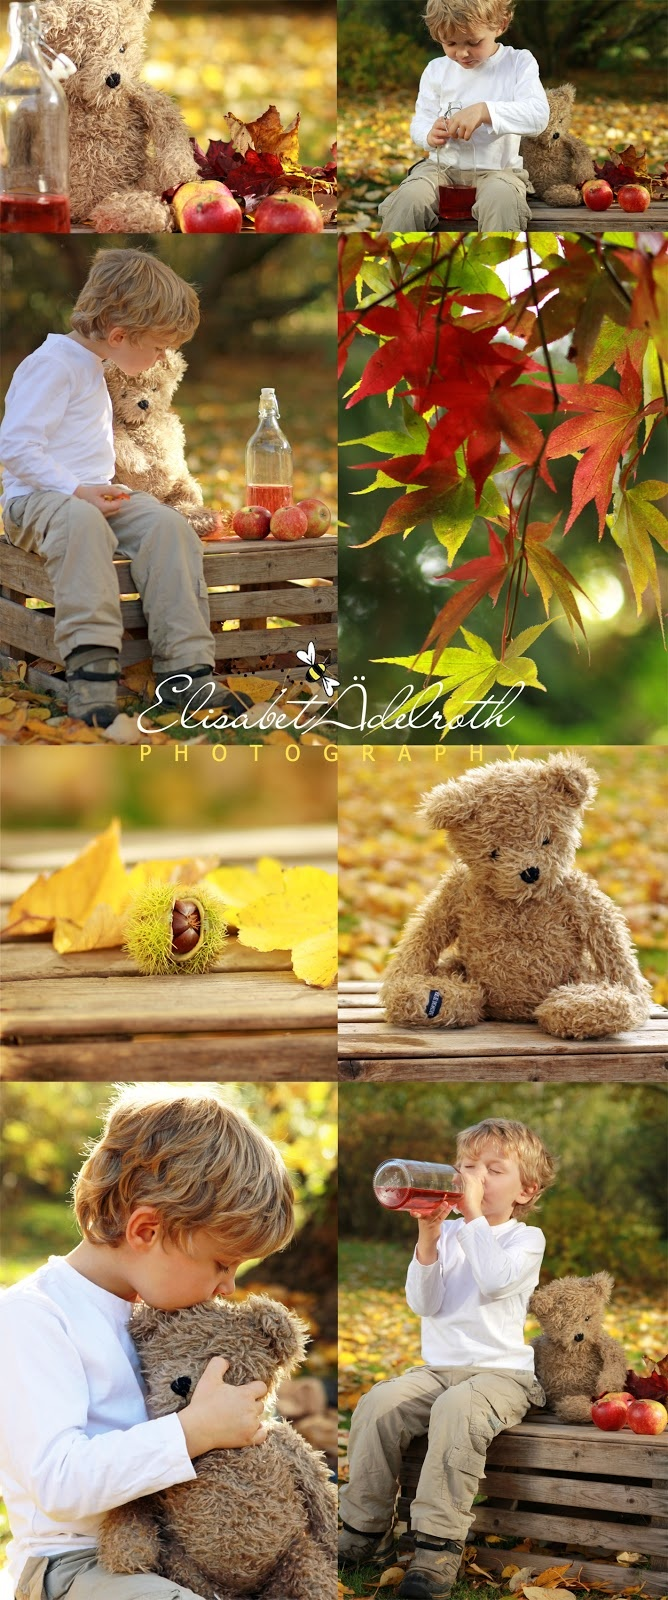 Color your life by Elisabet Ädelroth  Beautiful autumn day